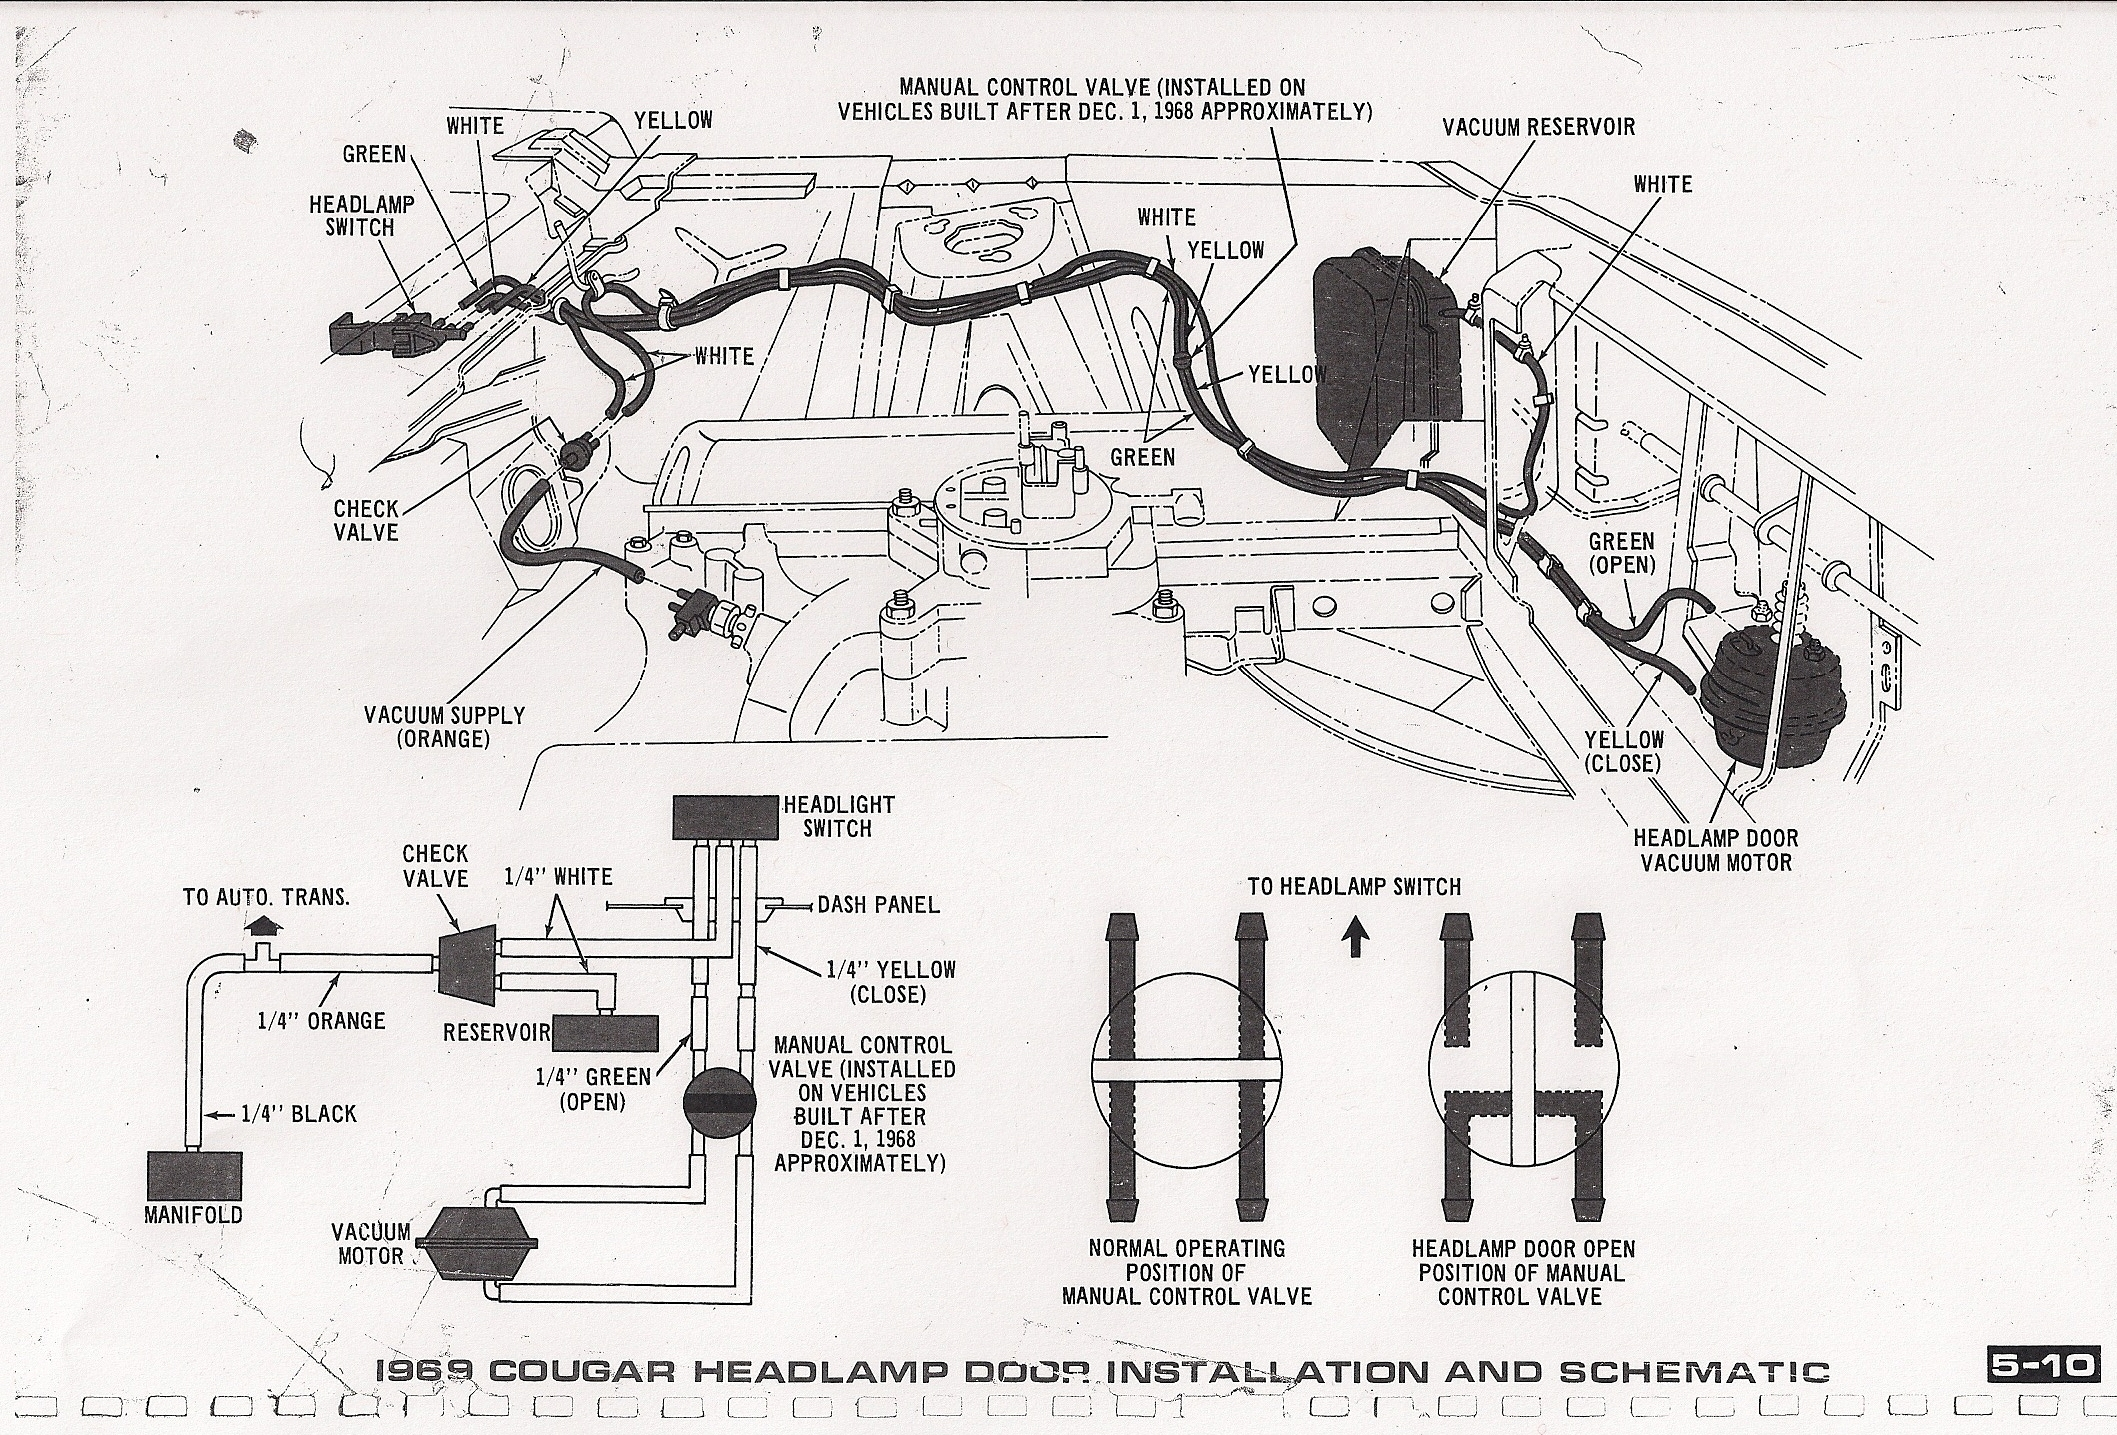 1969 Dodge Charger Vacuum Diagram Smart Wiring Diagrams 1967 Mercury Cougar Anything U2022 Rh Optionfire Co Project